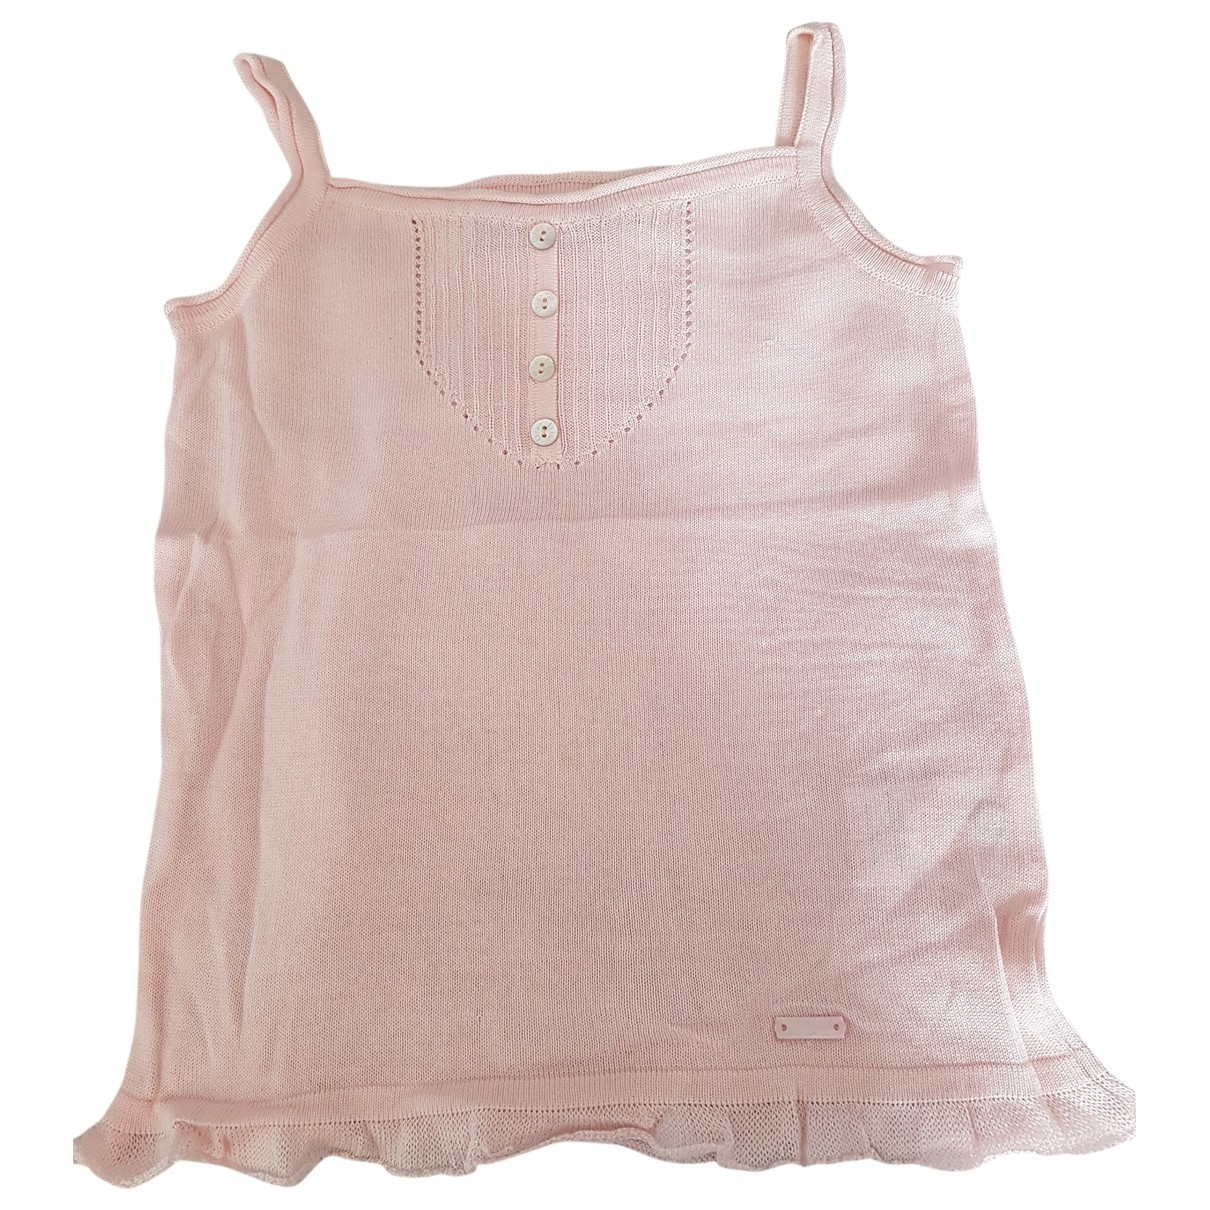 Dior \N Pink Cotton  top for Kids 8 years - up to 128cm FR